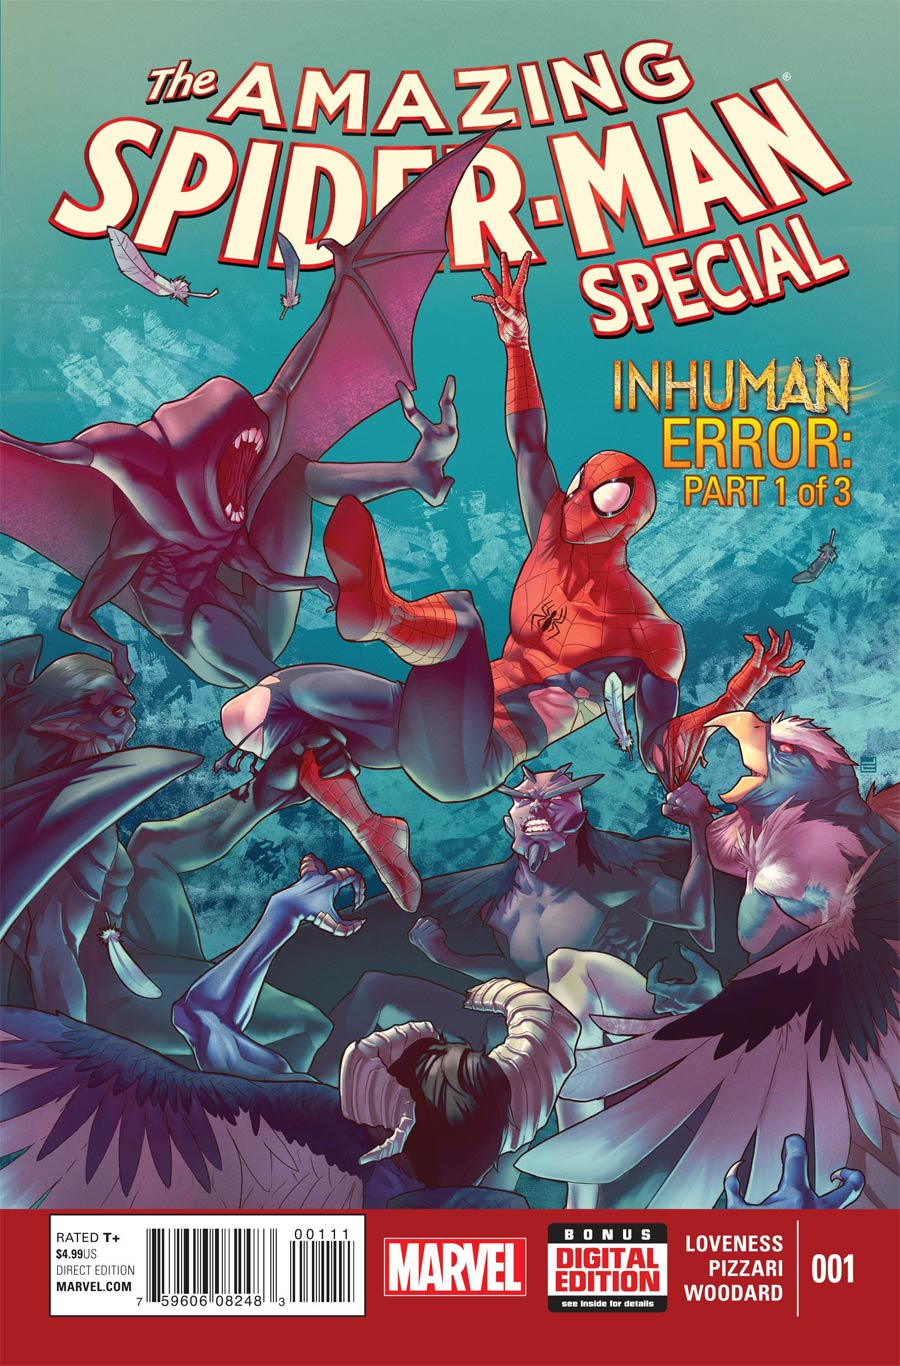 Amazing Spider-Man Vol 3 Special #1 Cover A Regular Jamal Campbell Cover (Inhuman Error Part 1)